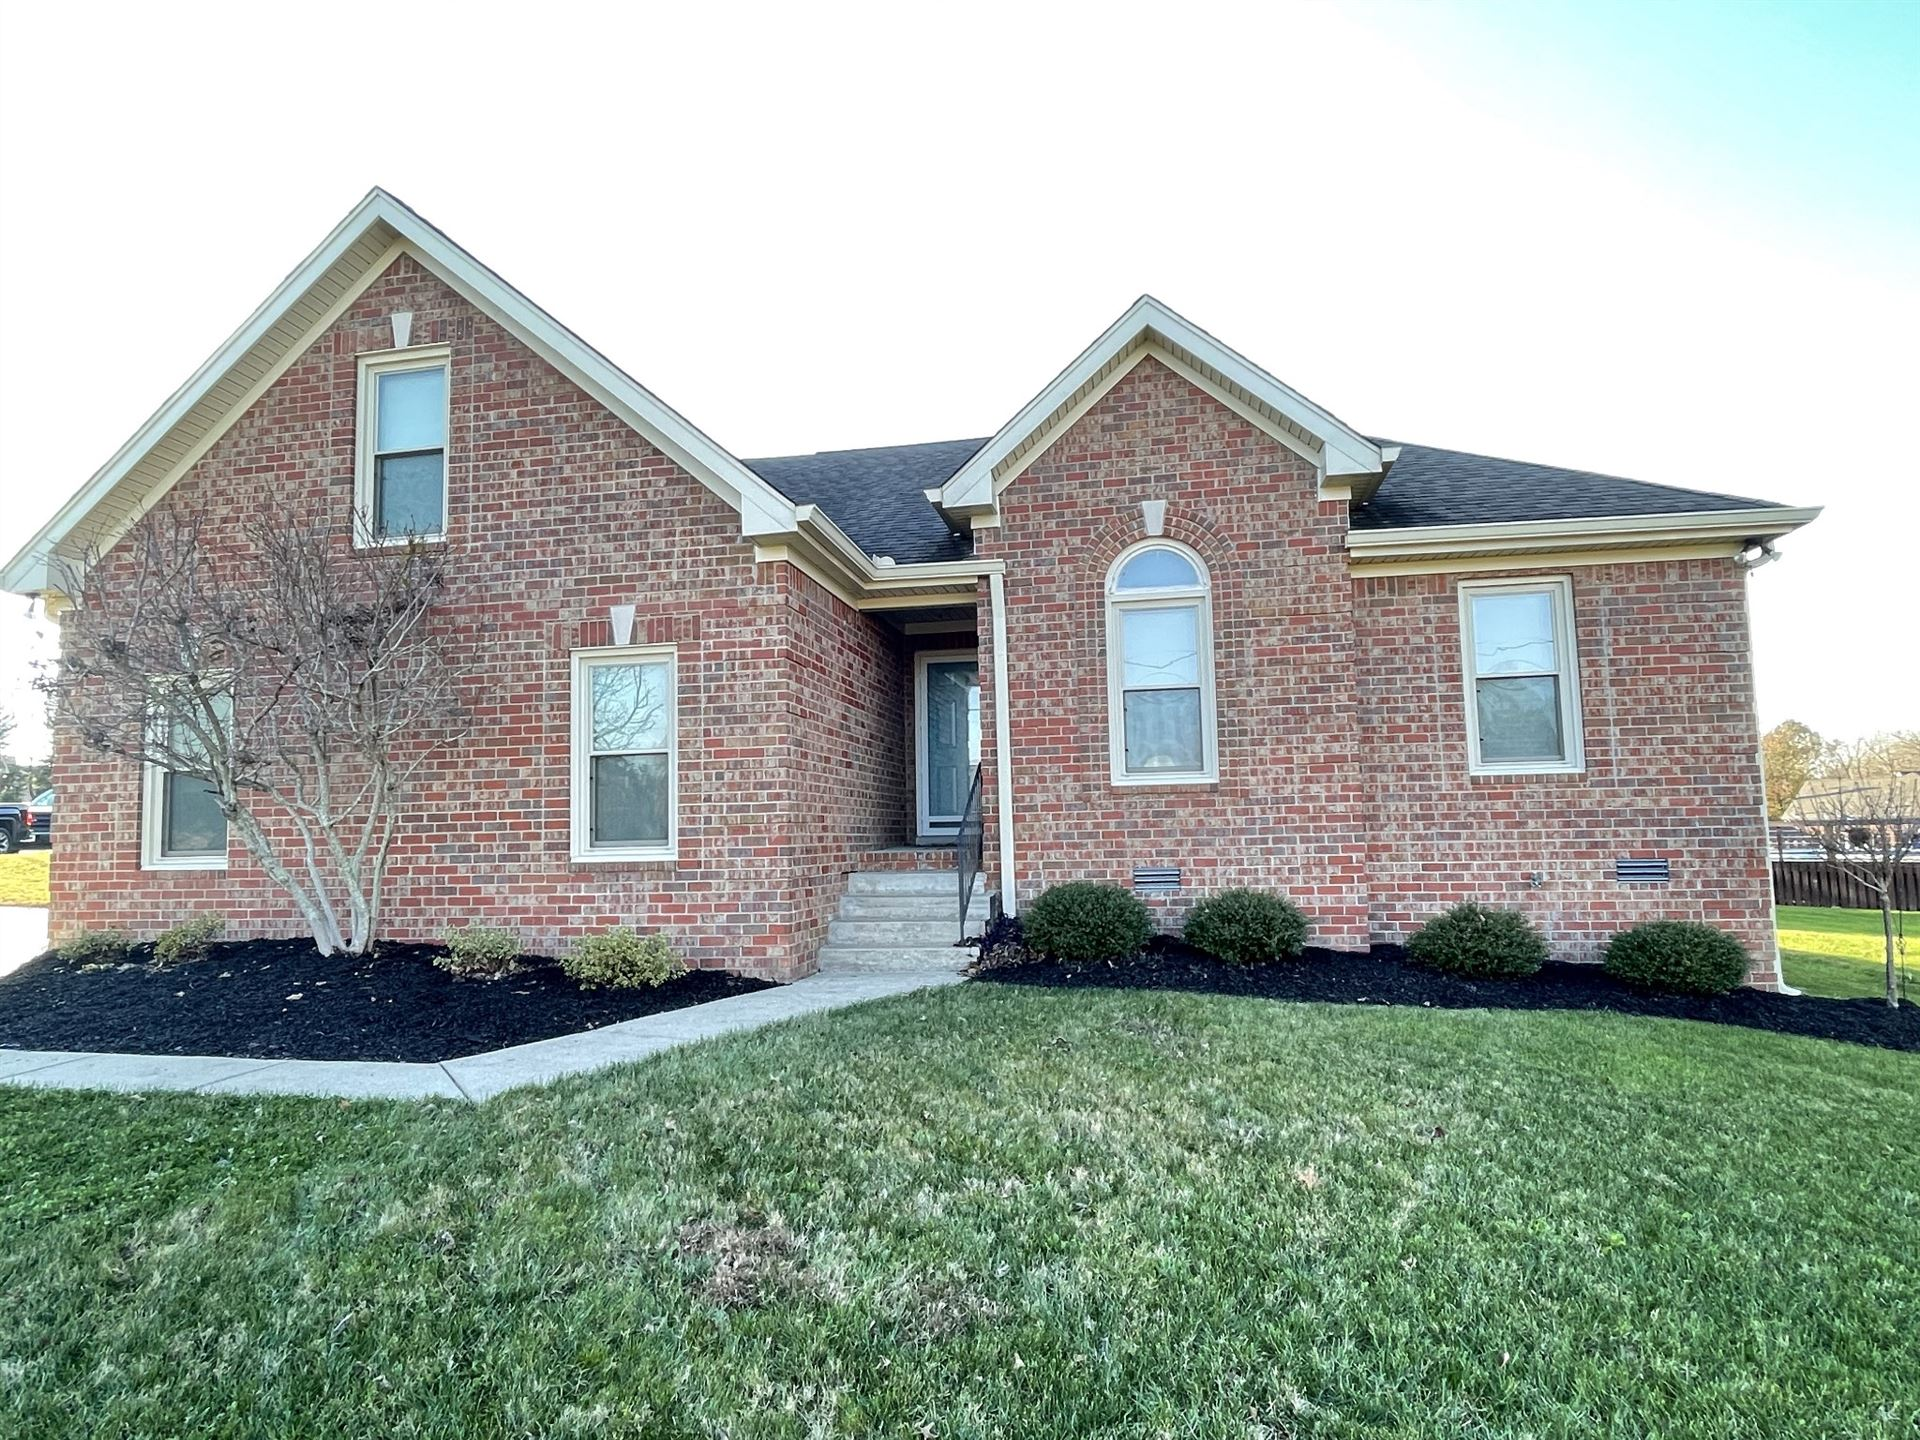 5600 Chestnutwood Trl, Hermitage, TN 37076 - MLS#: 2210714